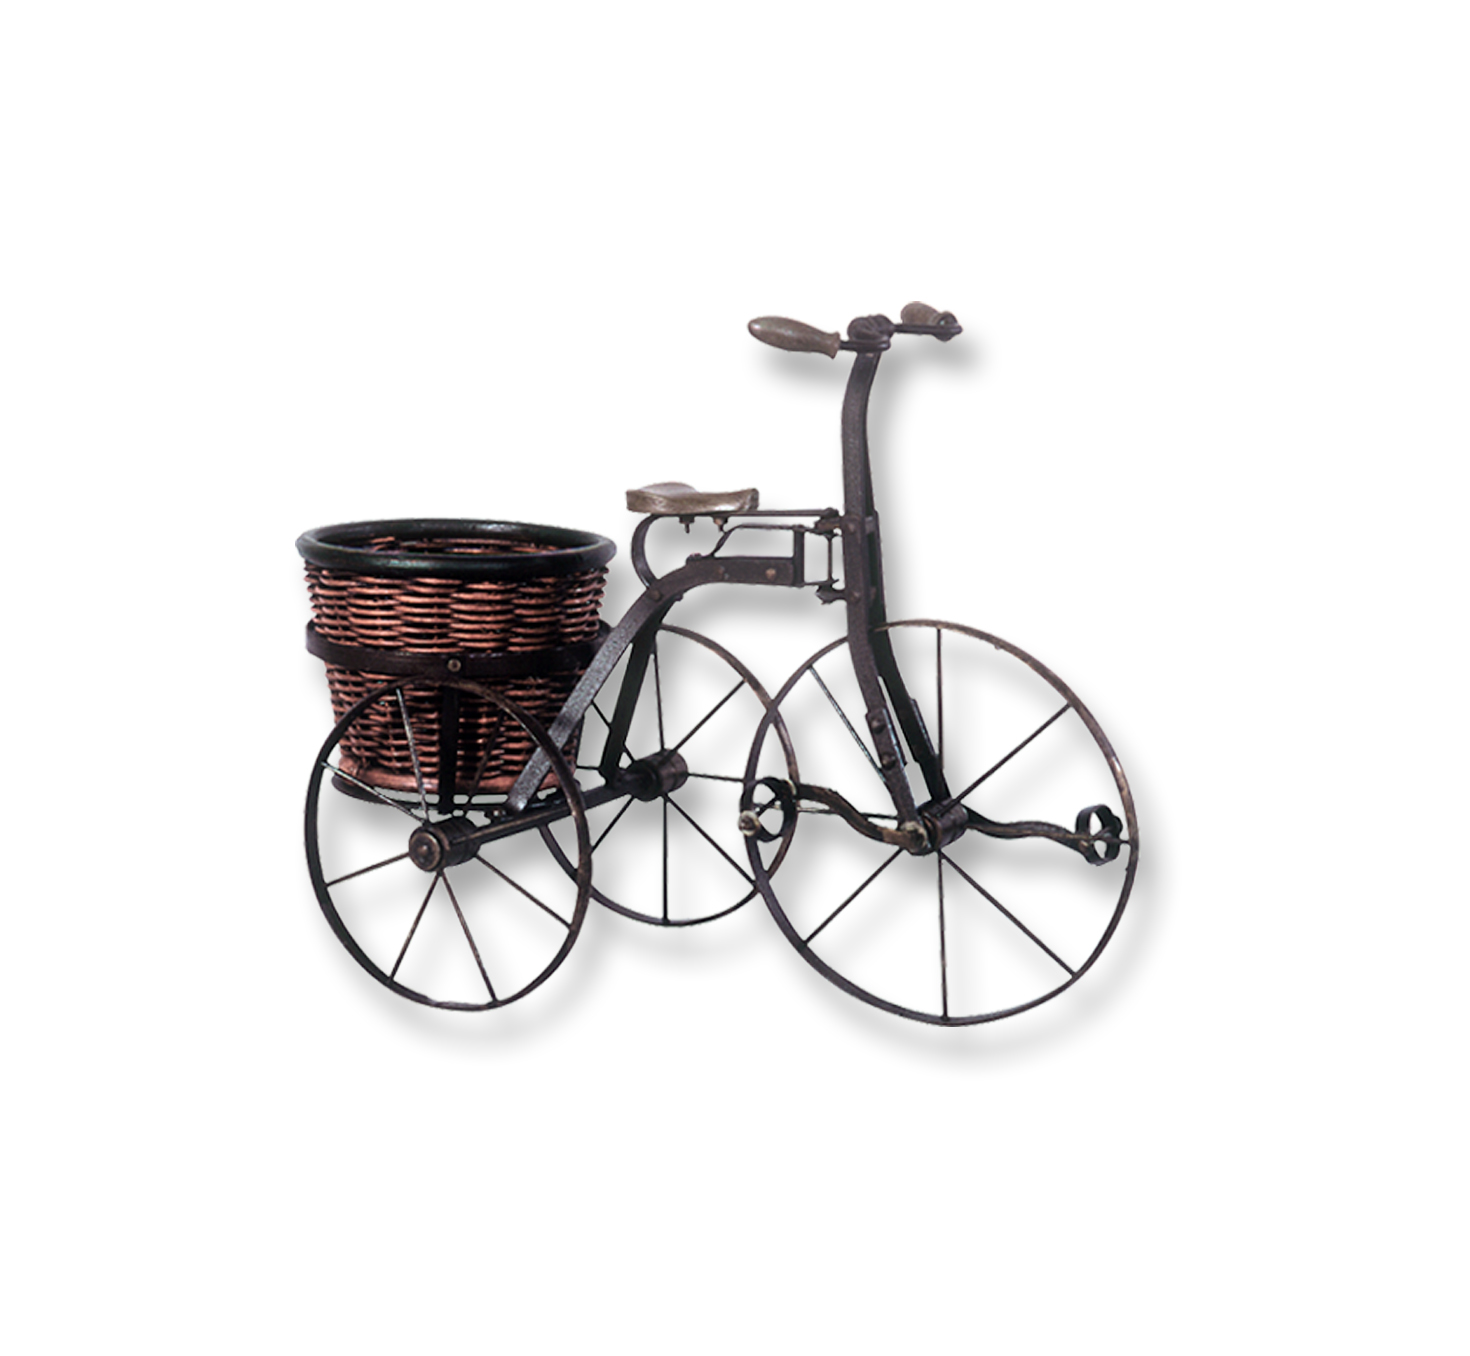 Bathroom sink dimensions - Antique Iron Bicycle With Round Basket